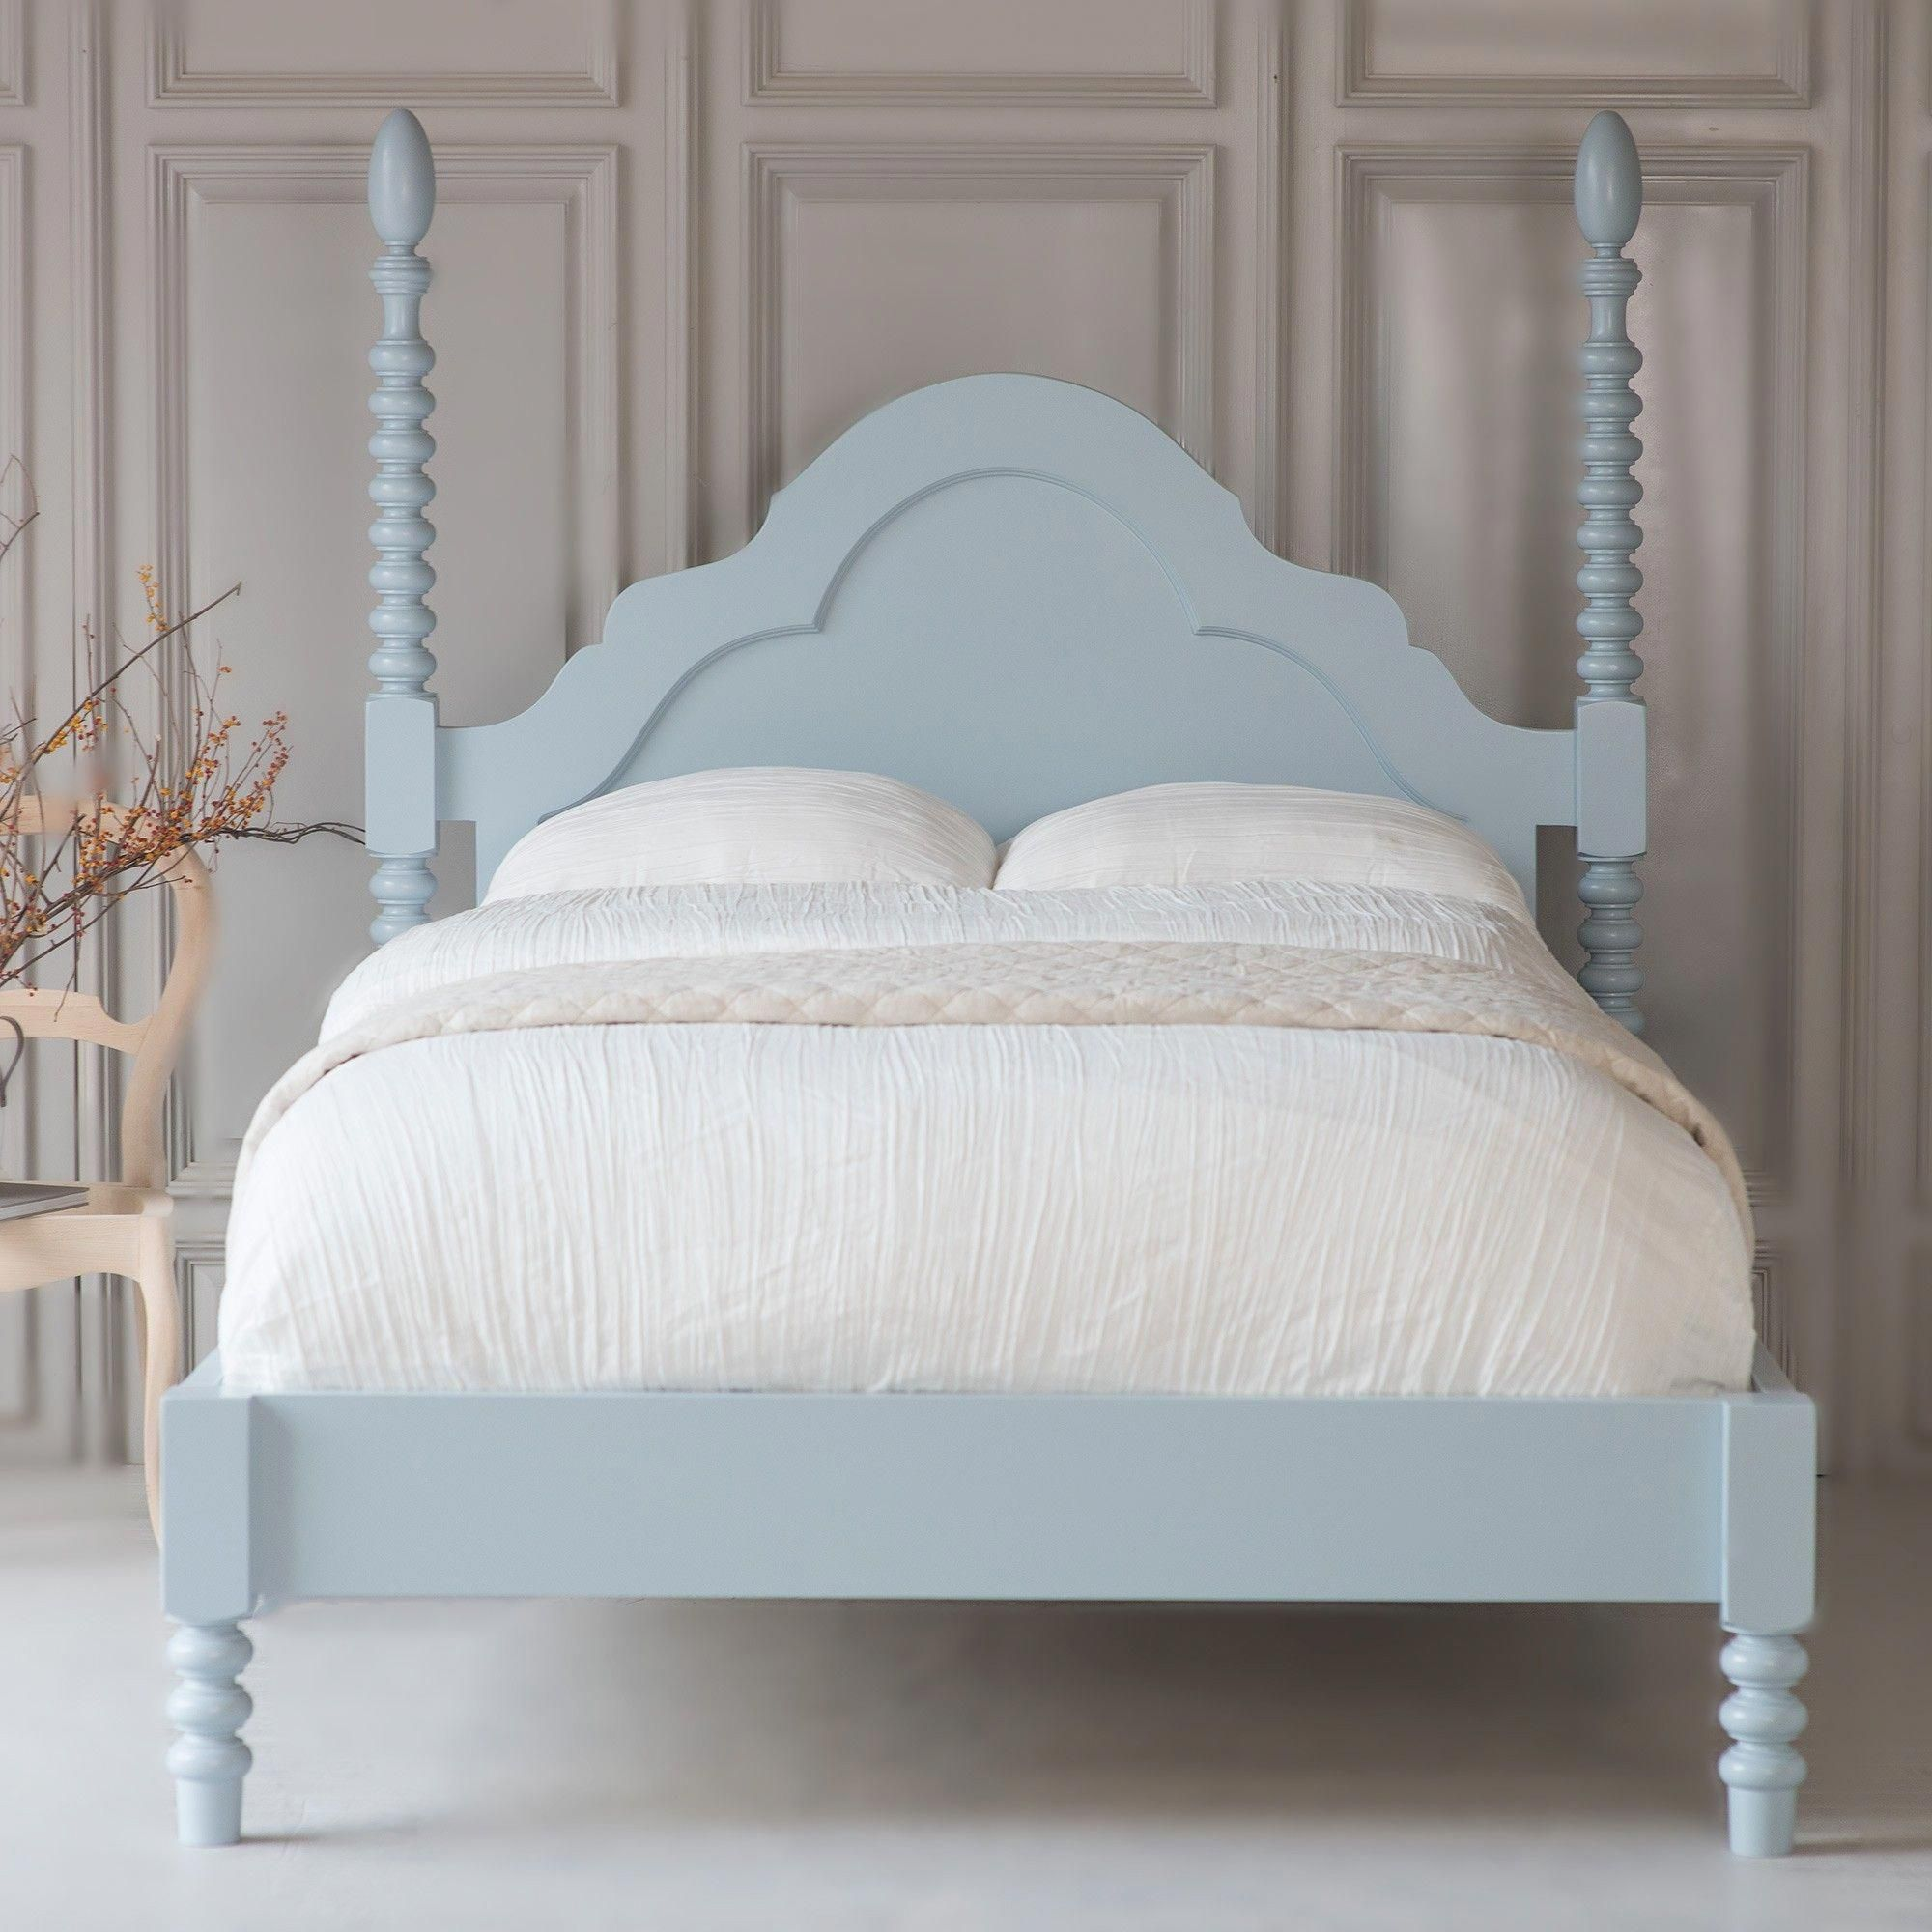 Gwenny Spindle Bed, Low Footboard (With images